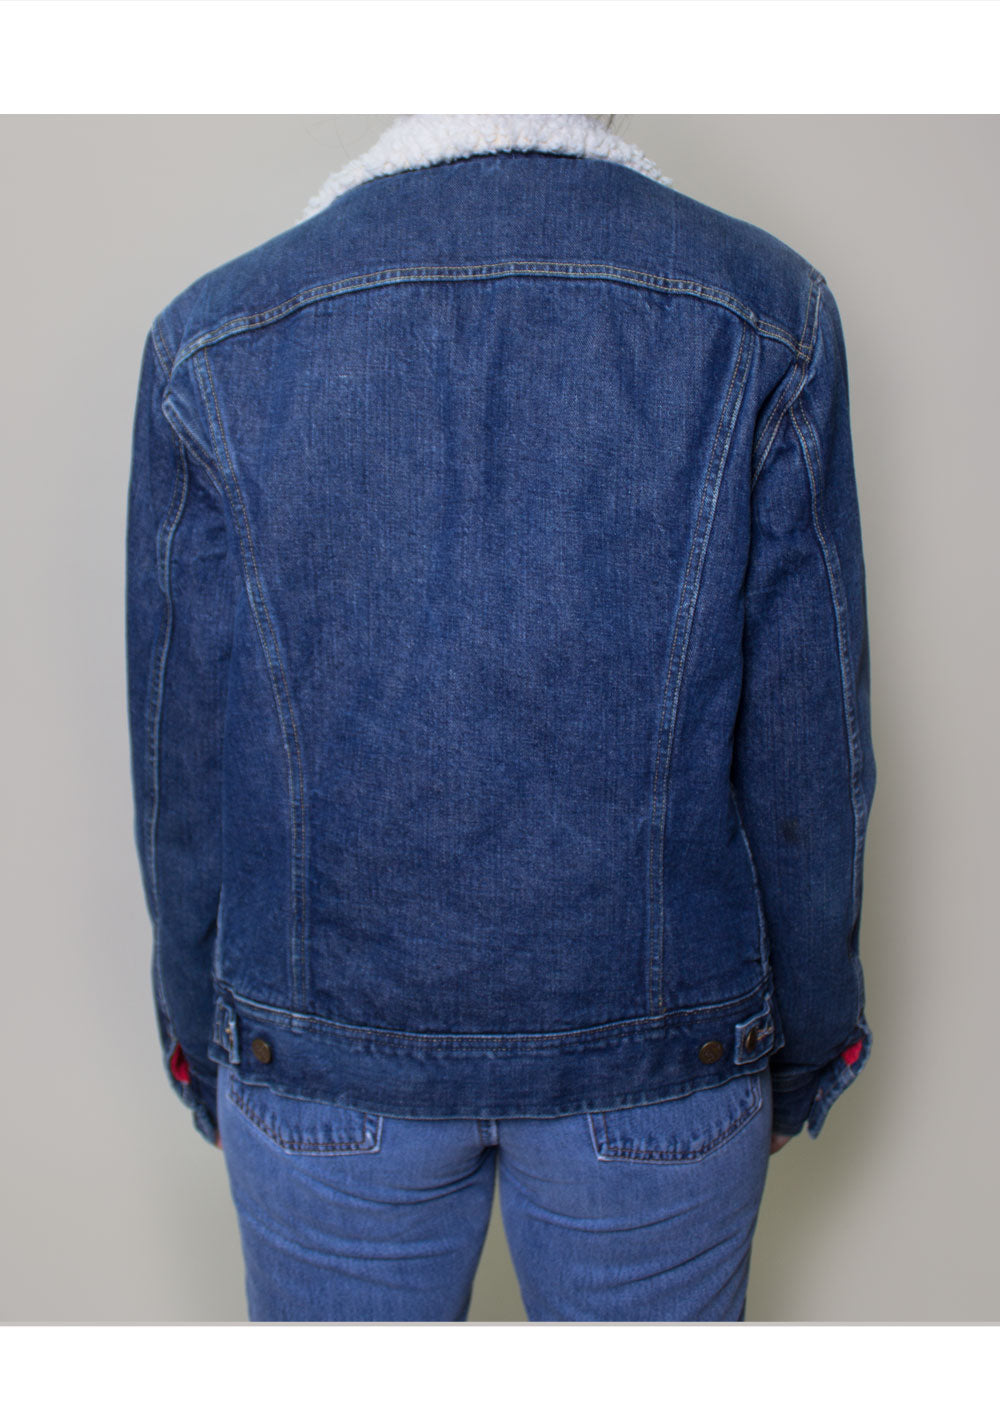 Lee Lined Denim Jacket